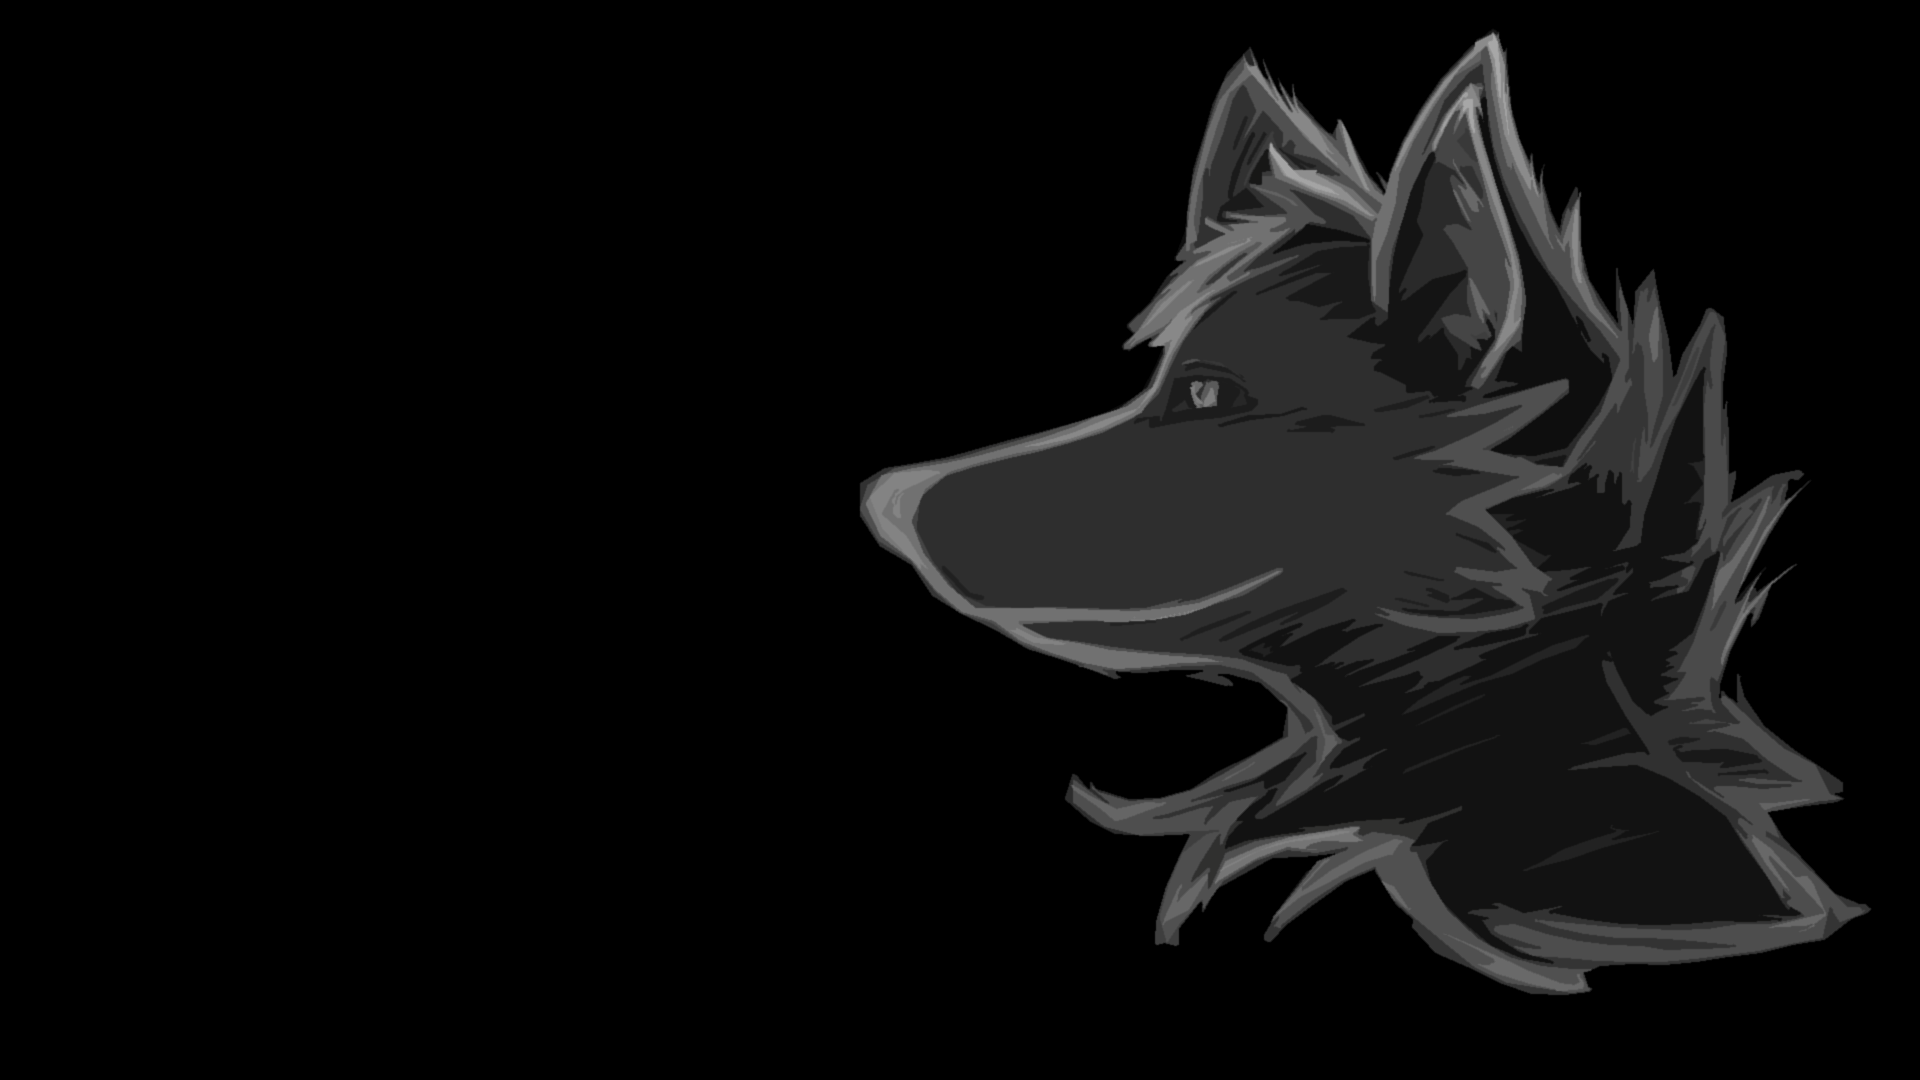 Black Wolf Wallpapers Hd Wallpaper Cave